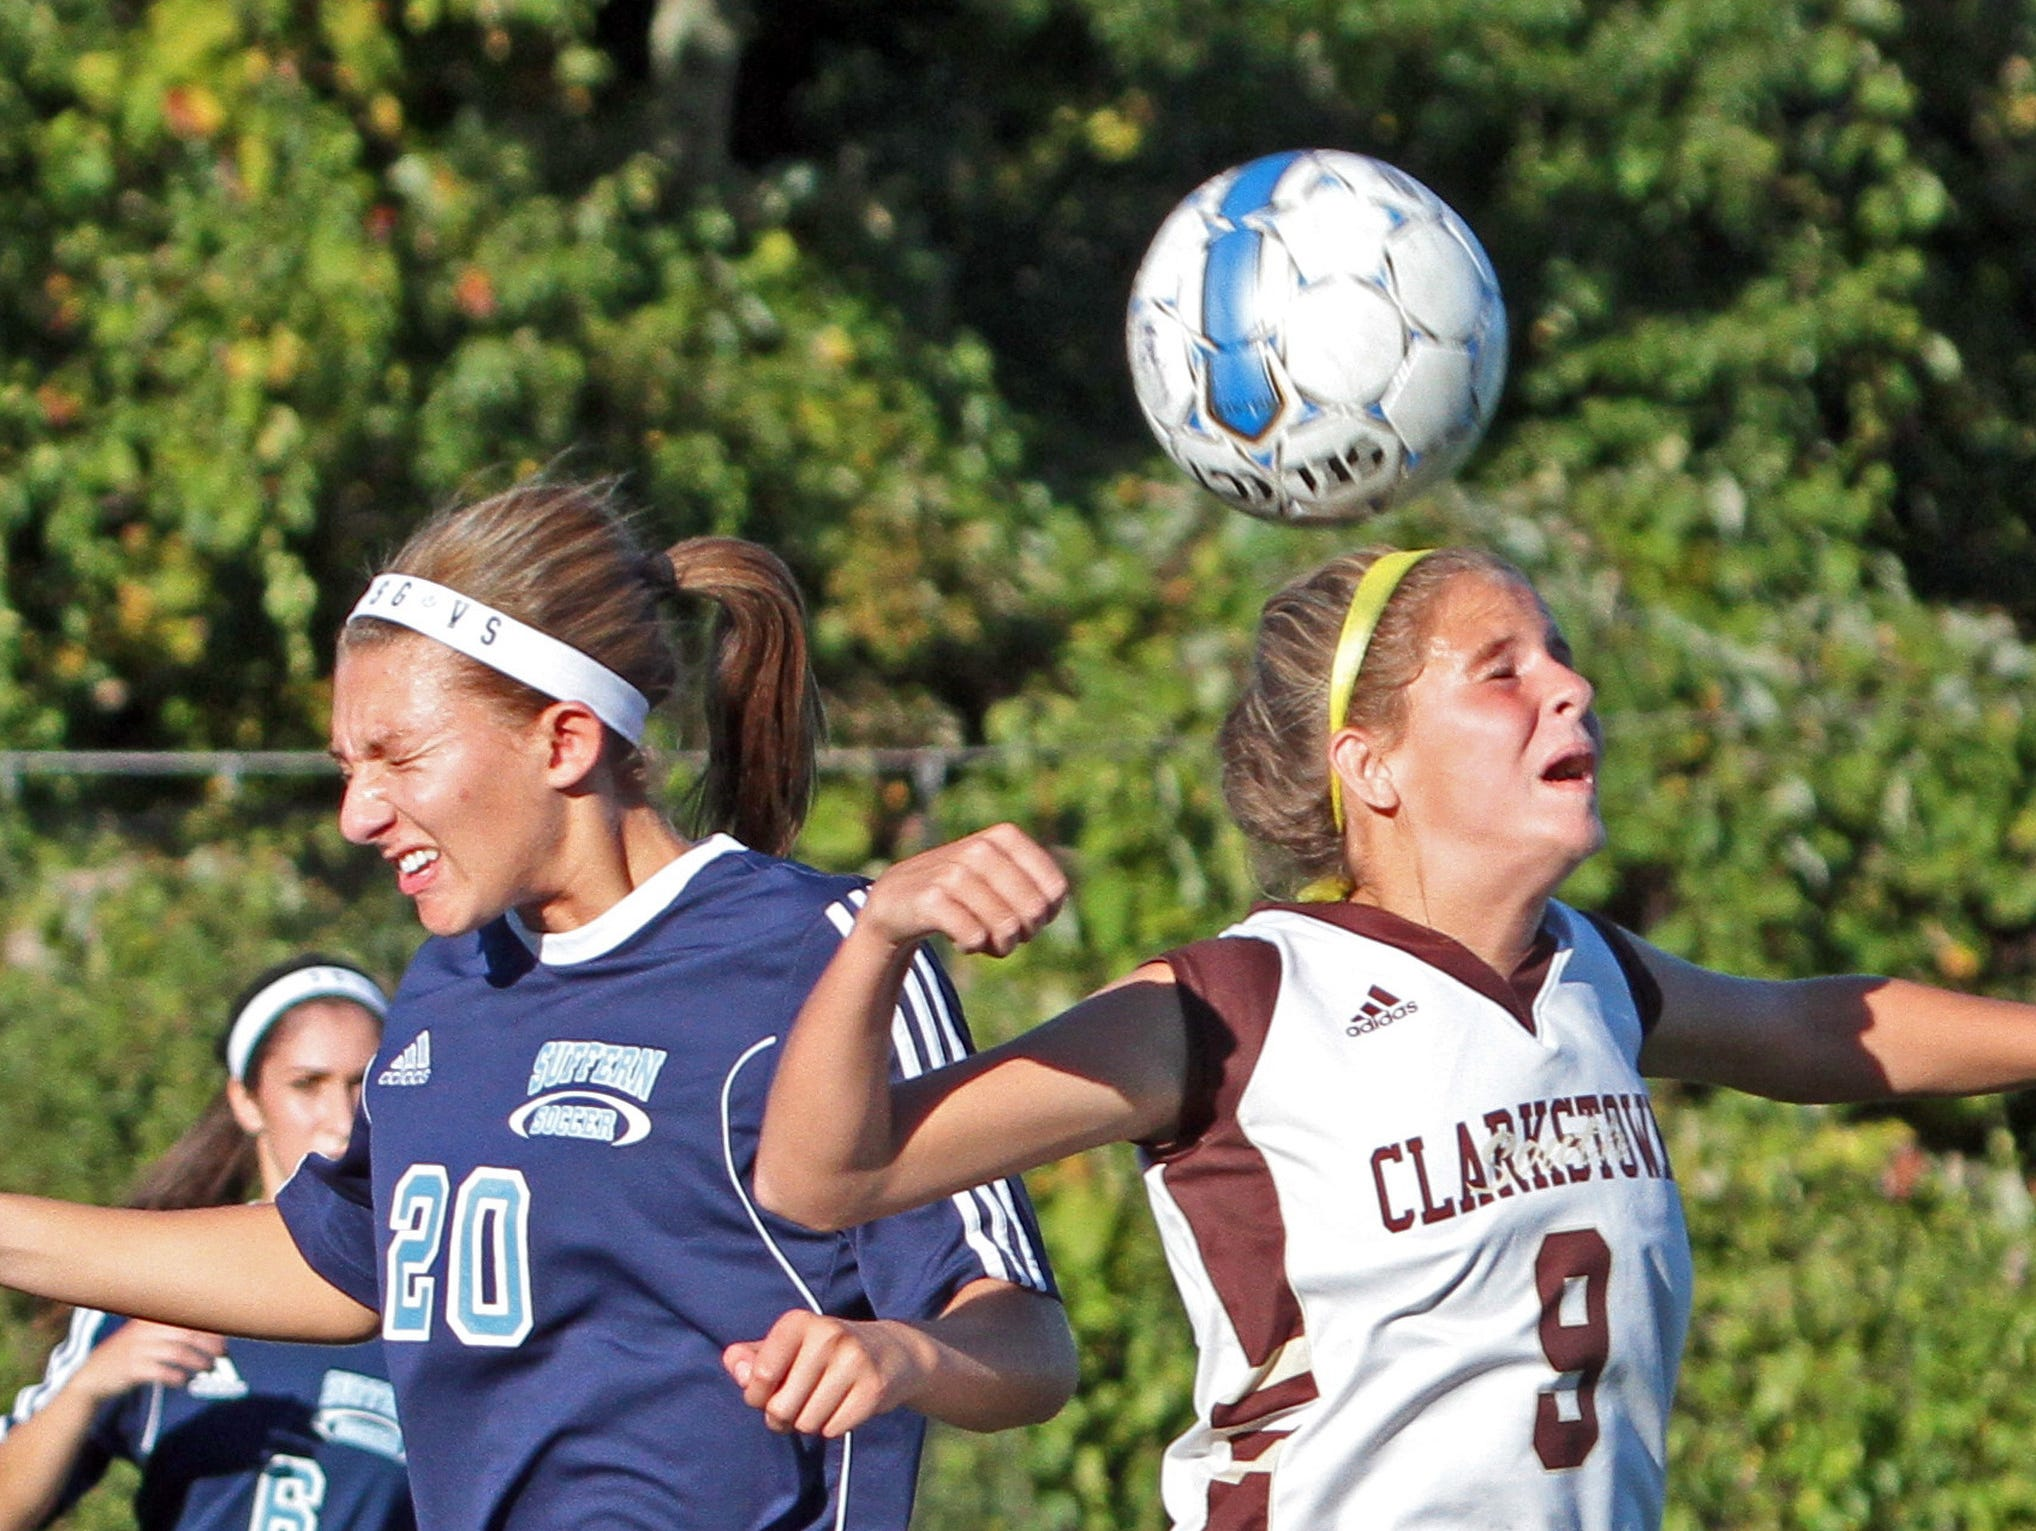 Clarkstown South's Abby Montera beats Suffern's Jayne Goldman to the ball during a varsity soccer game at Clarkstown South High School Oct. 6, 2015. Clarkstown South handed Suffern it's first loss of the season with a 4-1 victory.